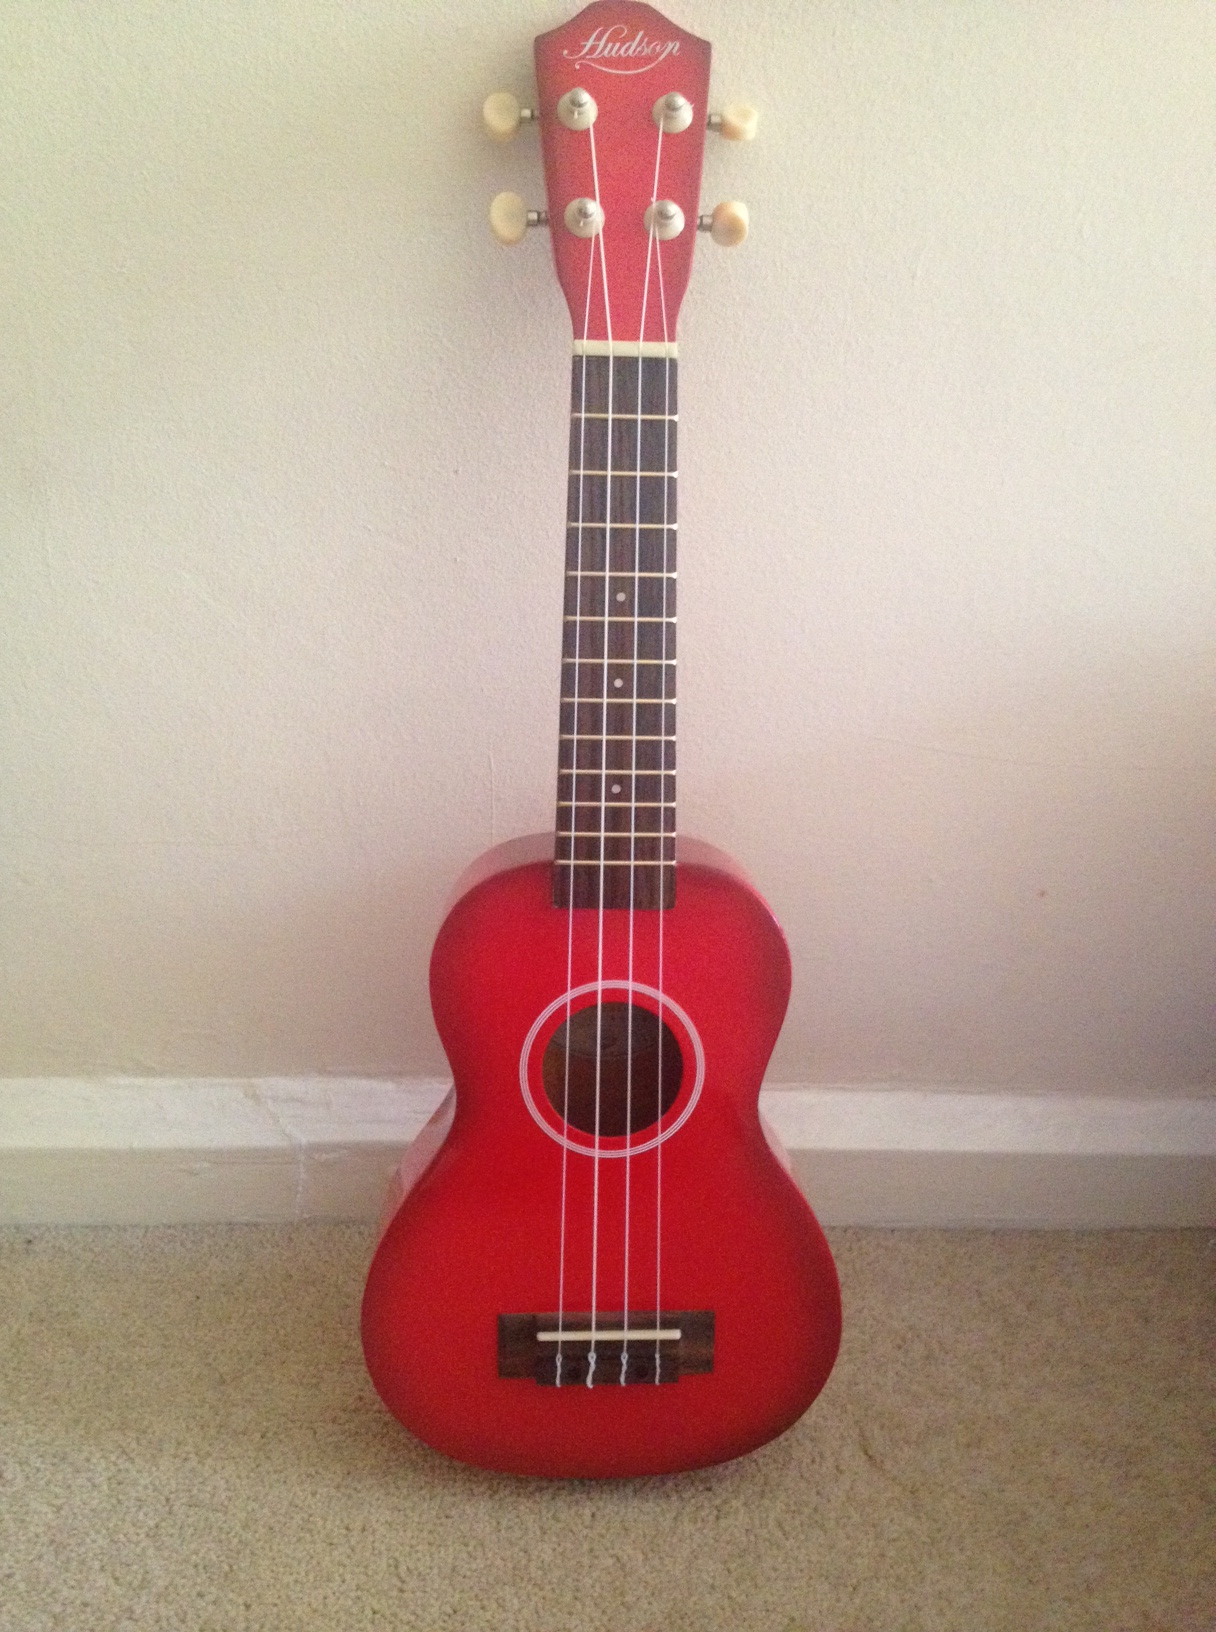 Uncategorized the ukulele man of ross it is a budget end ukulele but it plays really comfortably now and has a really good sound the intonation in particular has been vastly improved hexwebz Choice Image